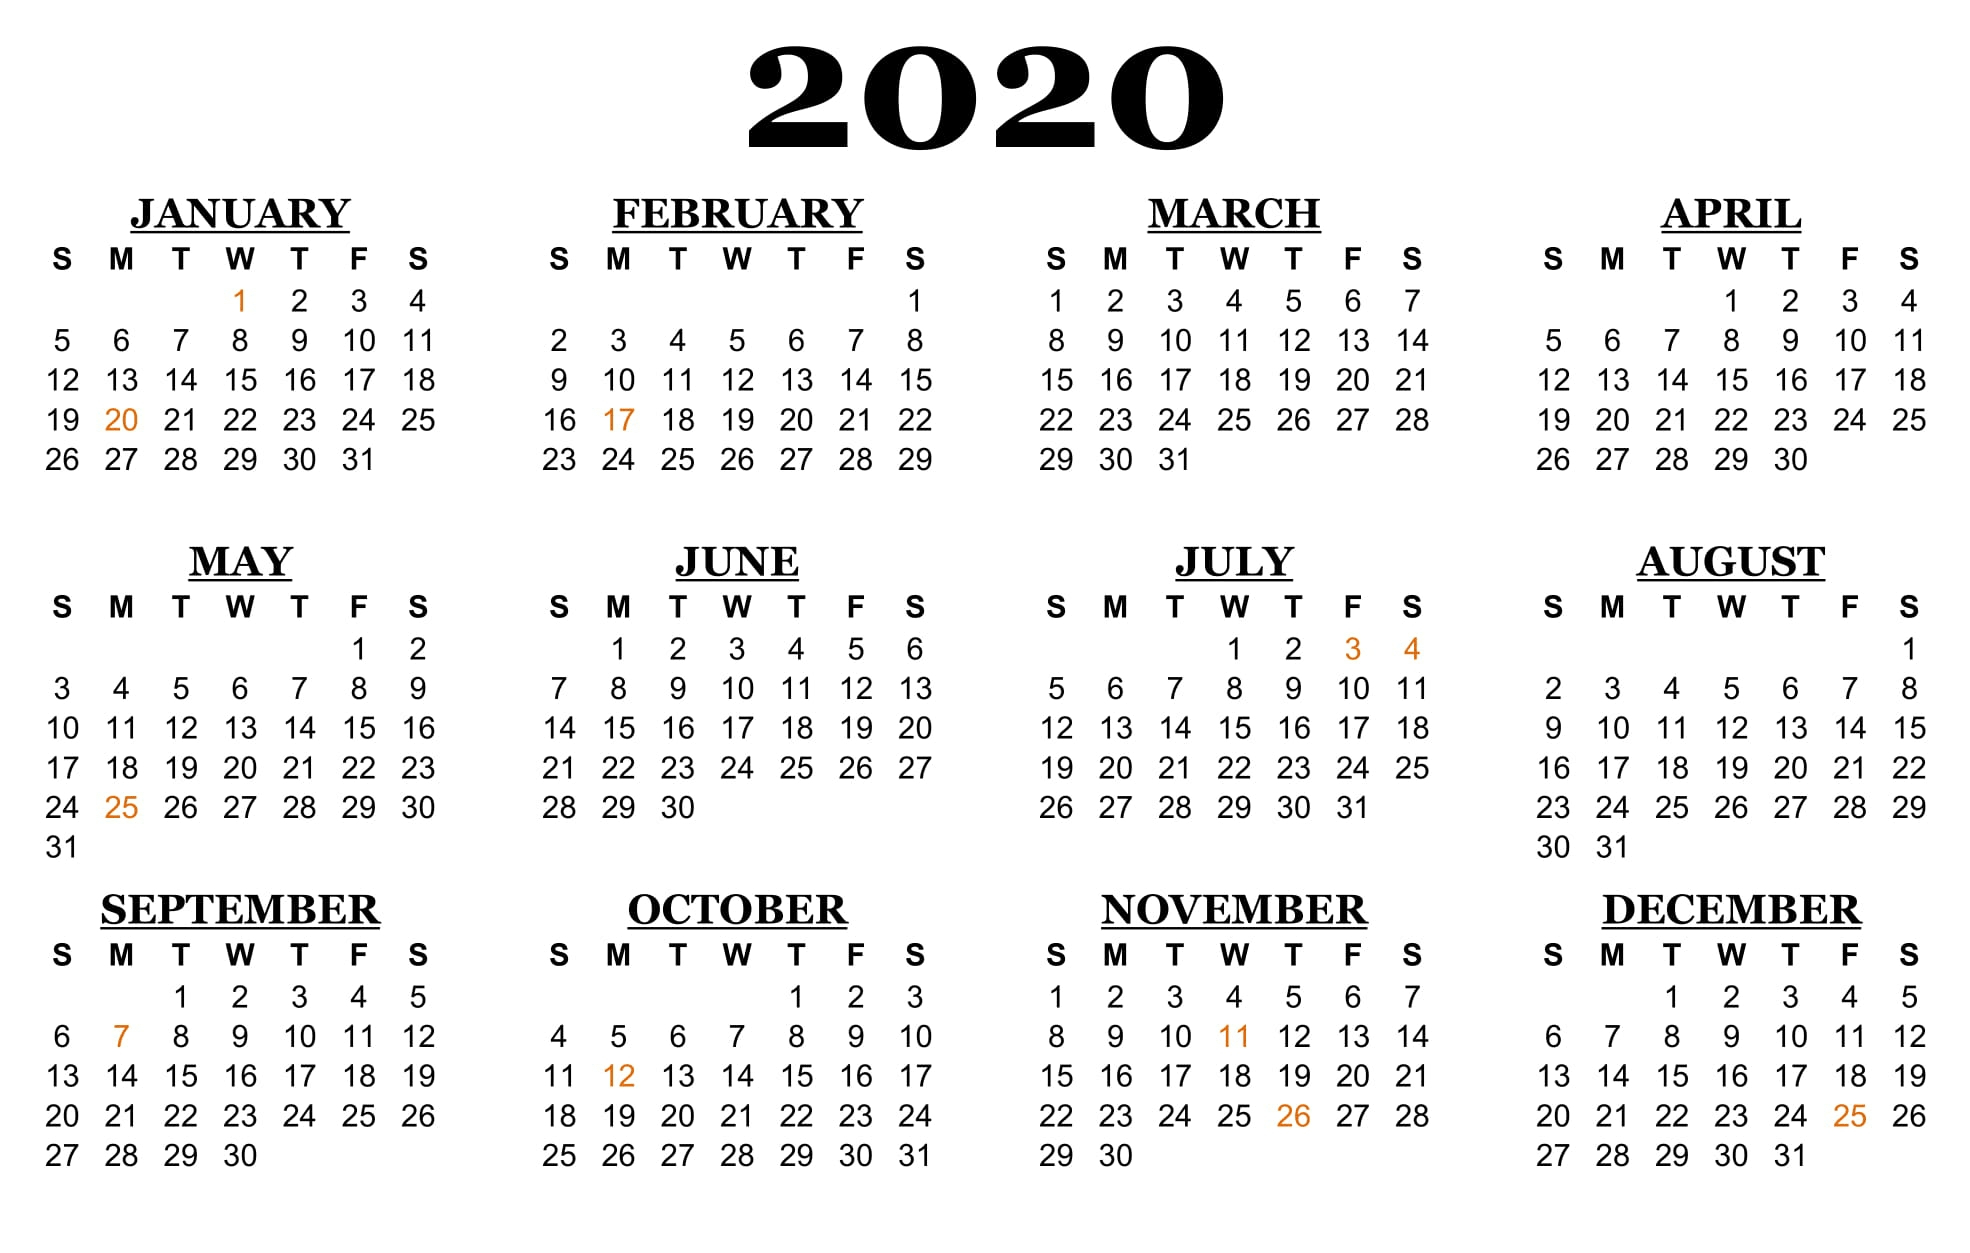 2020 Calendar With Nsw School Holidays   Free Calendar Printable Calenders With Date And Time On 8 1/2 X 11 Paper